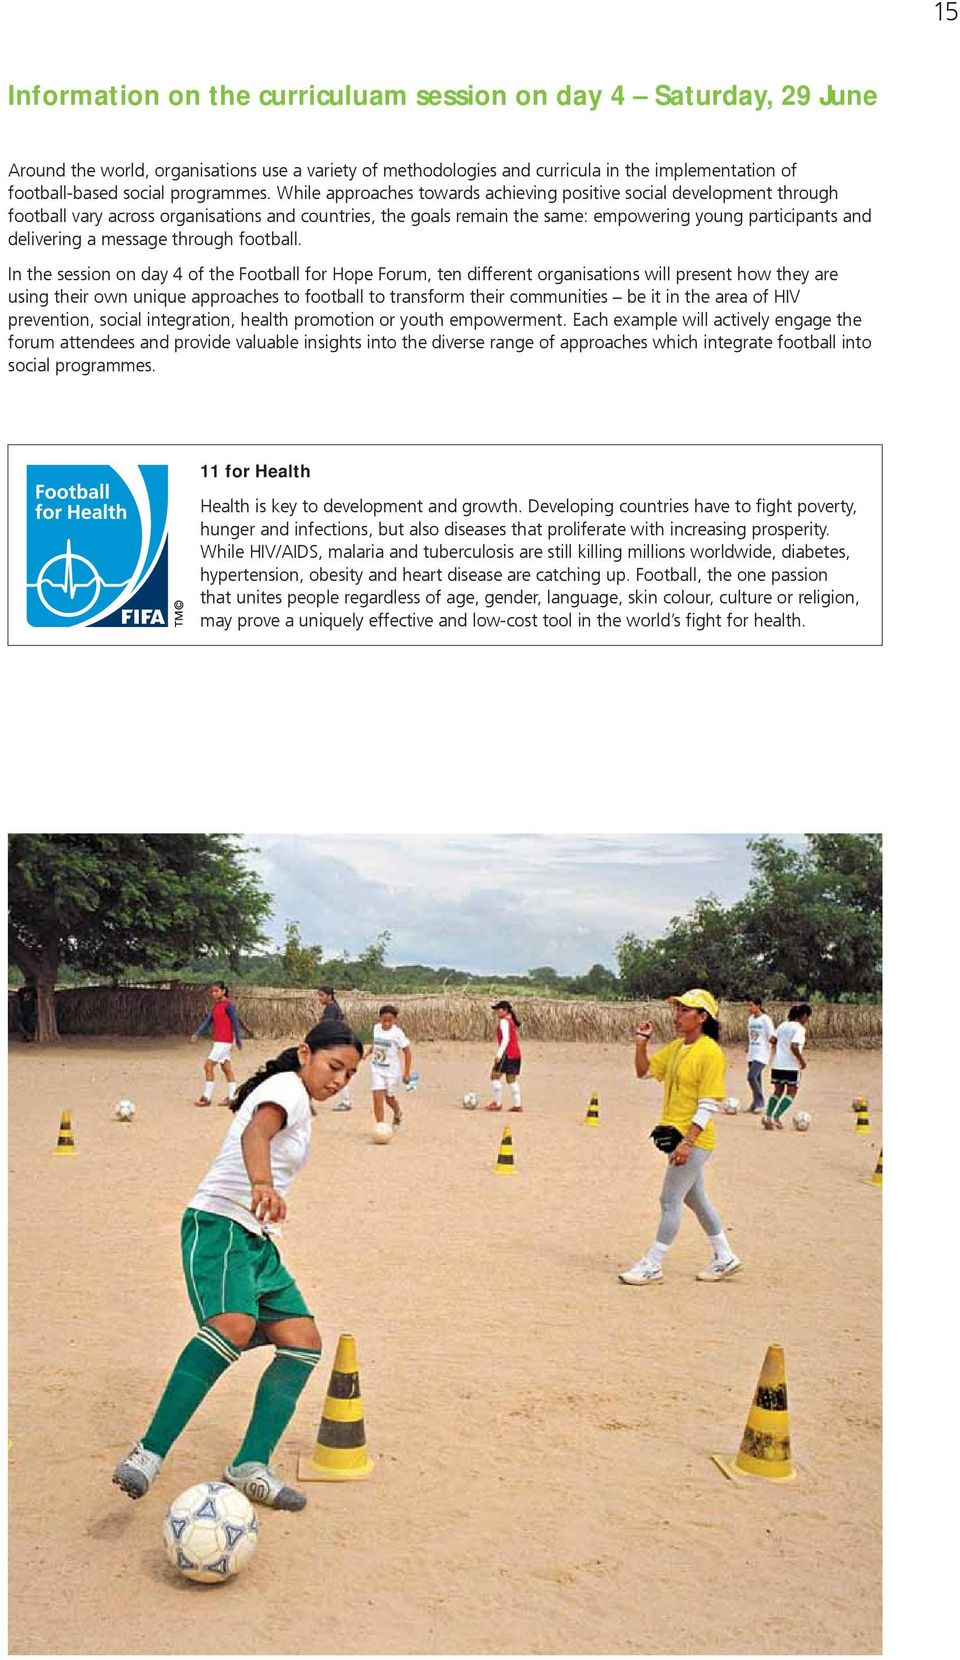 While approaches towards achieving positive social development through football vary across organisations and countries, the goals remain the same: empowering young participants and delivering a